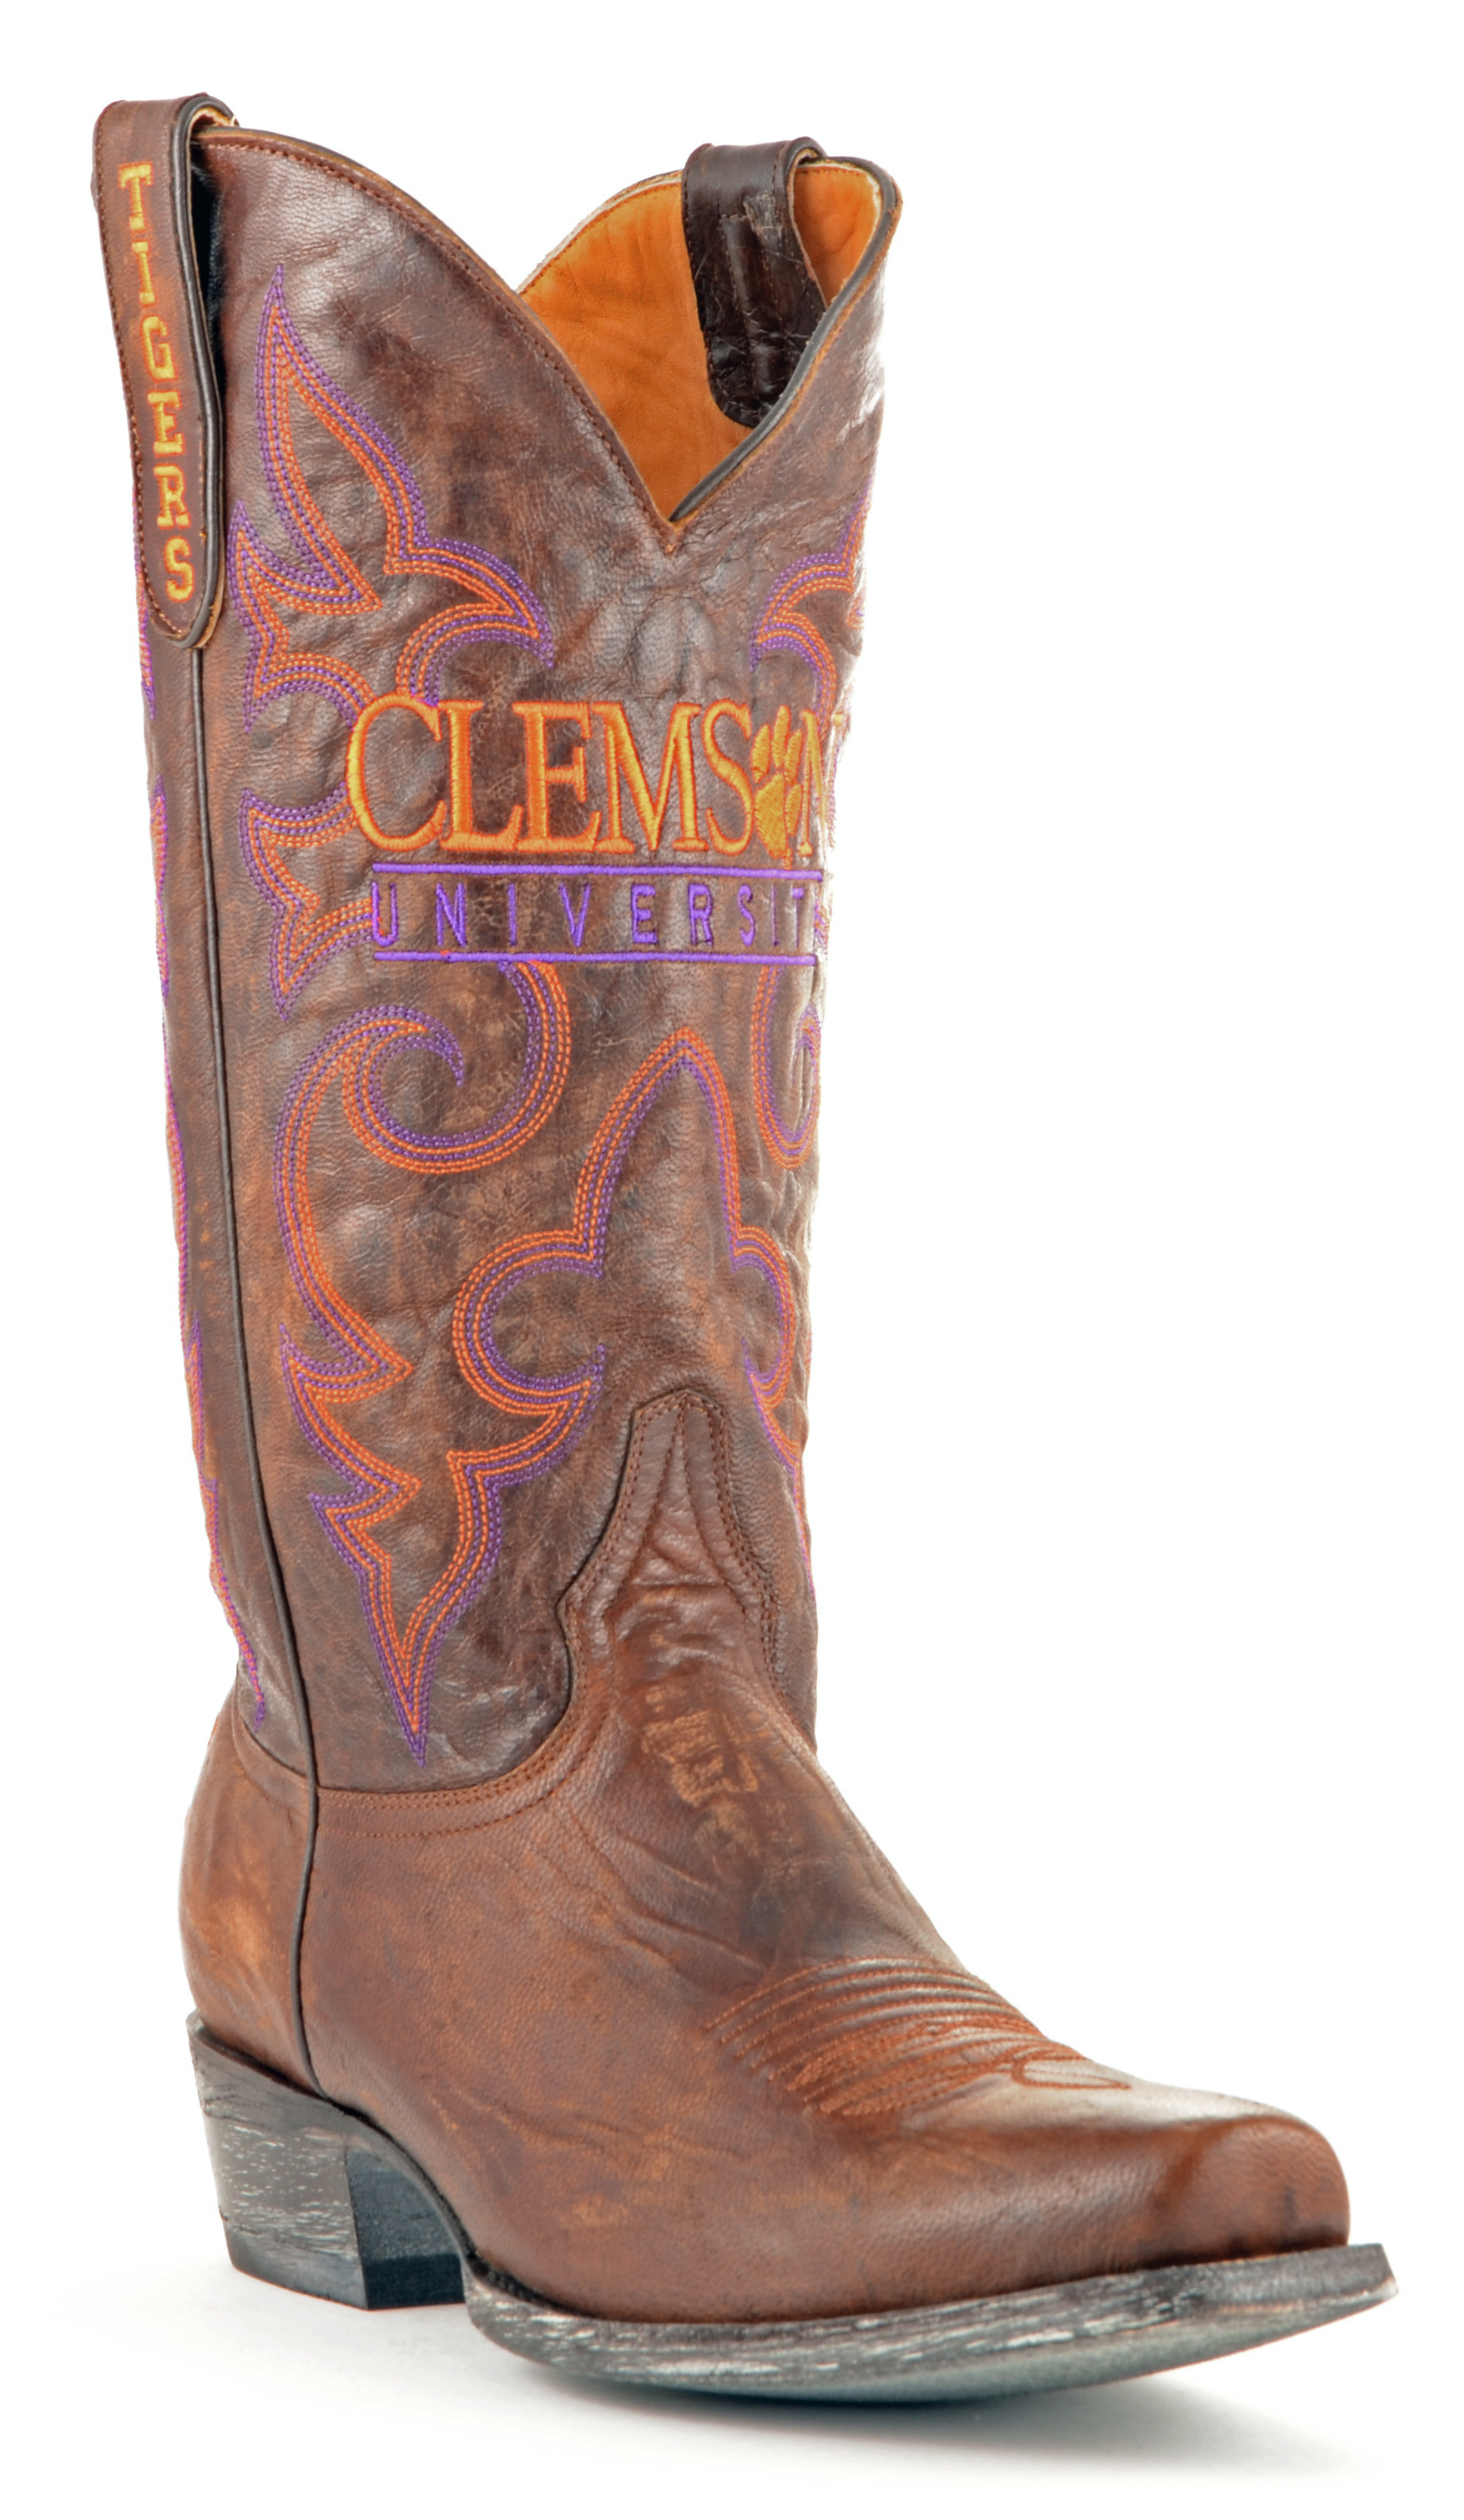 Gameday Boots Leather Clemson Board Room Cowboy Boots by GameDay Boots